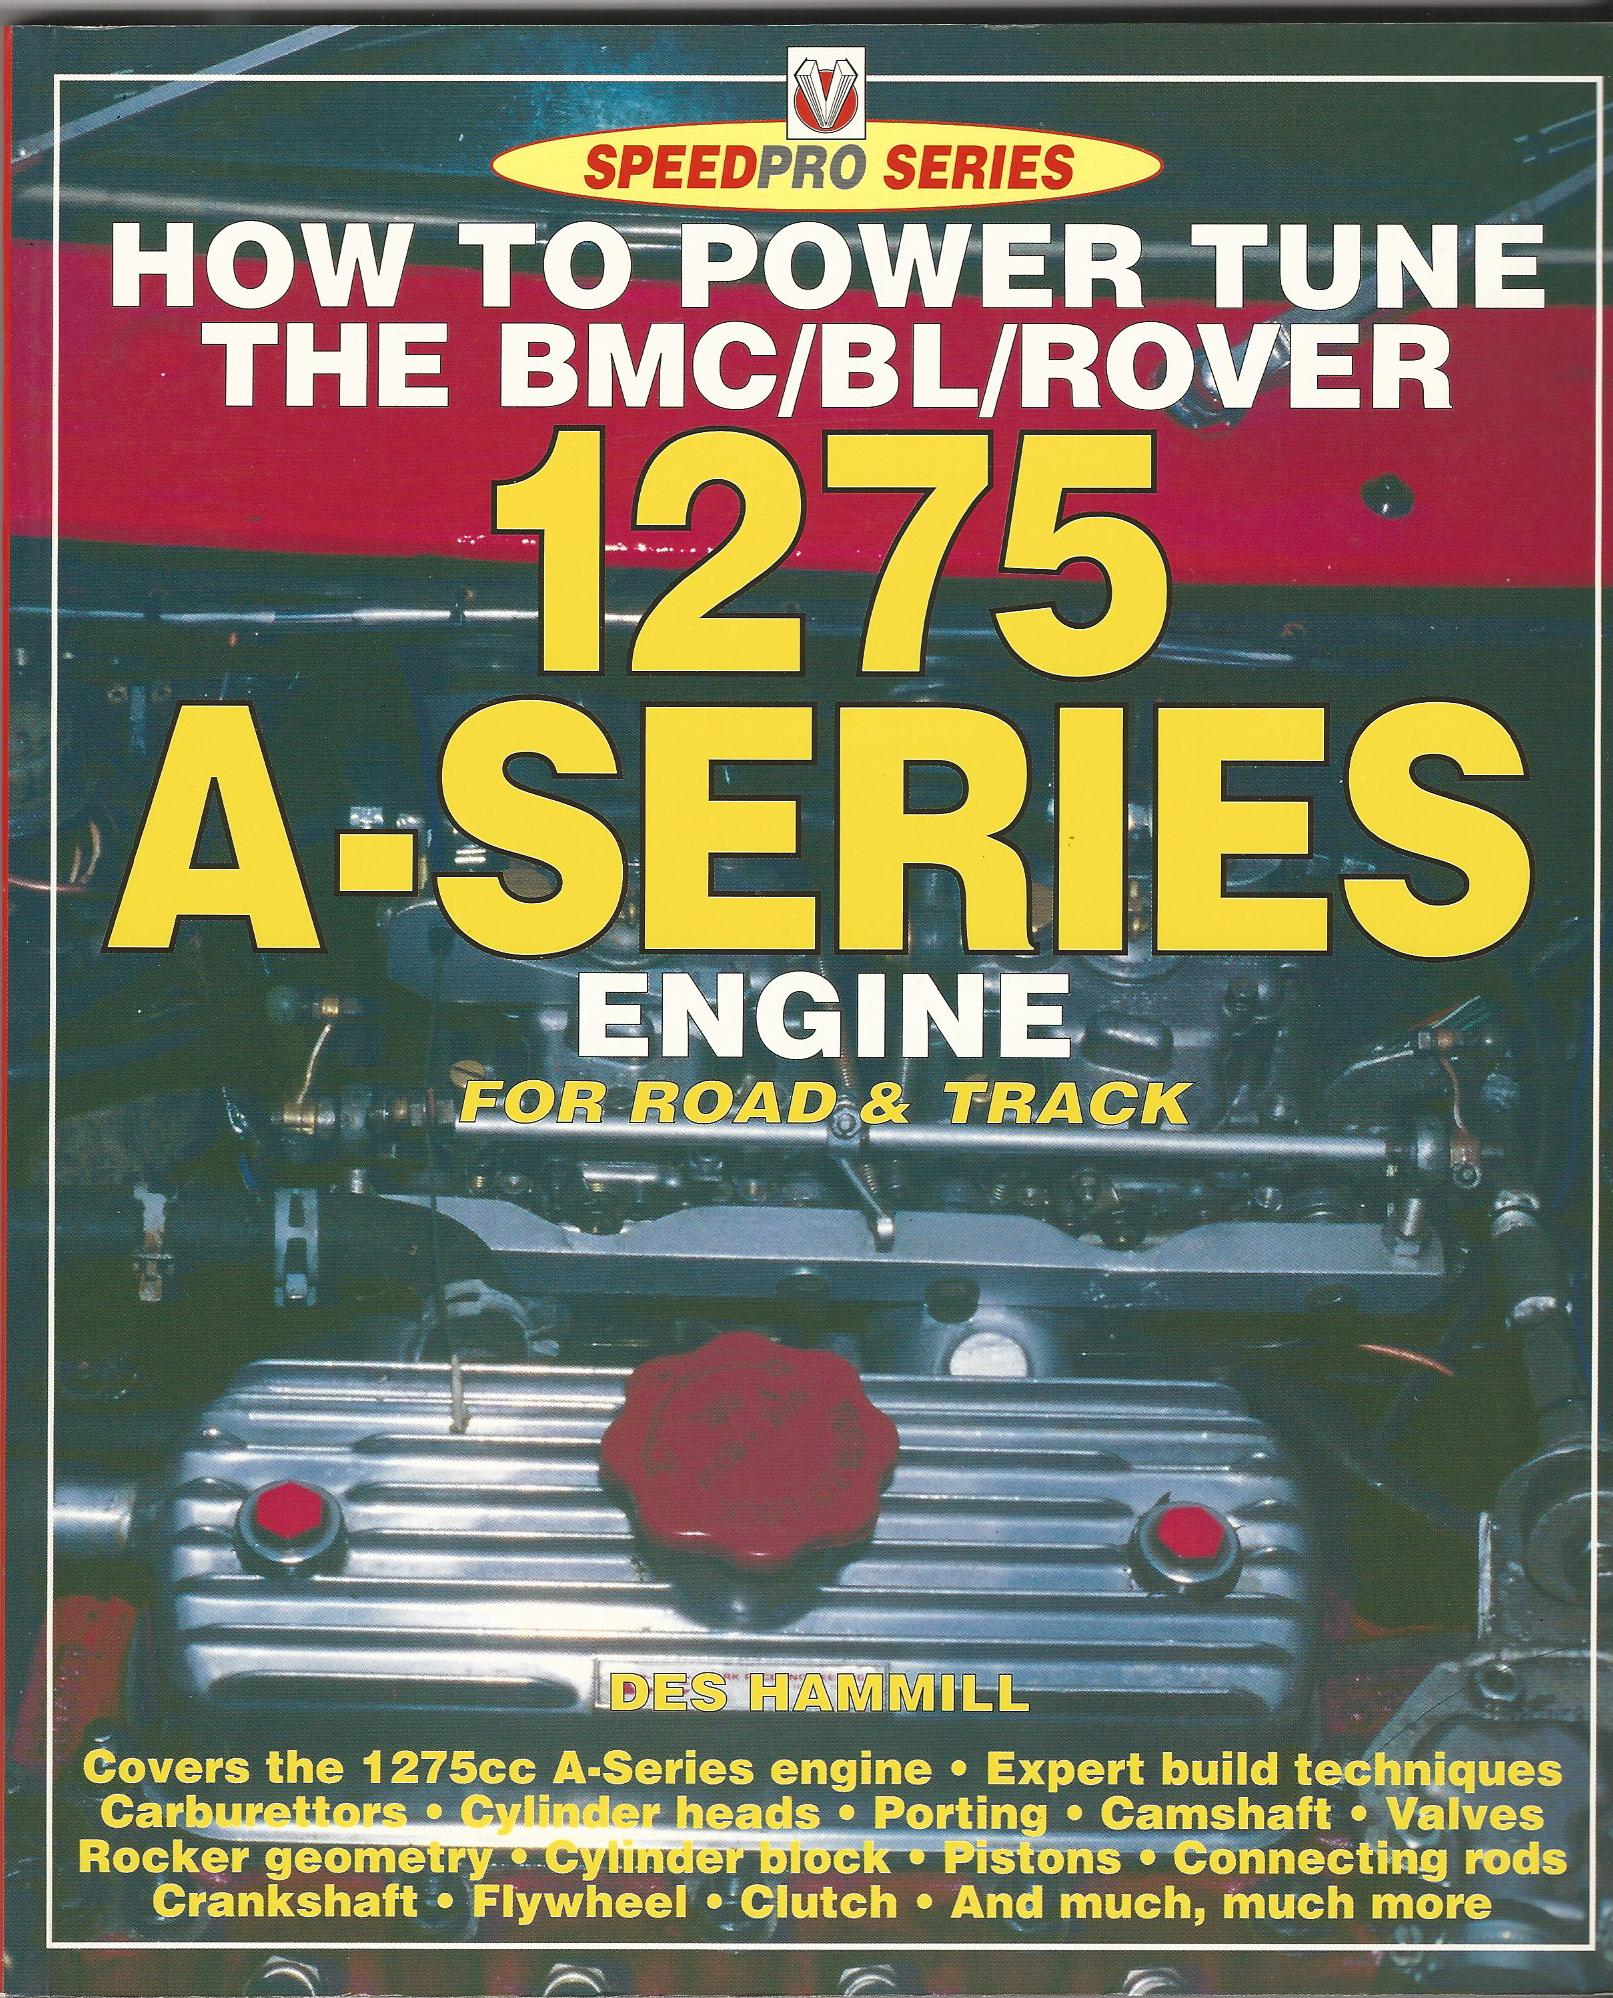 Image for How to Power Tune BMC/Rover A-Series Engines (Speedpro Series) Engine for Road and Track.